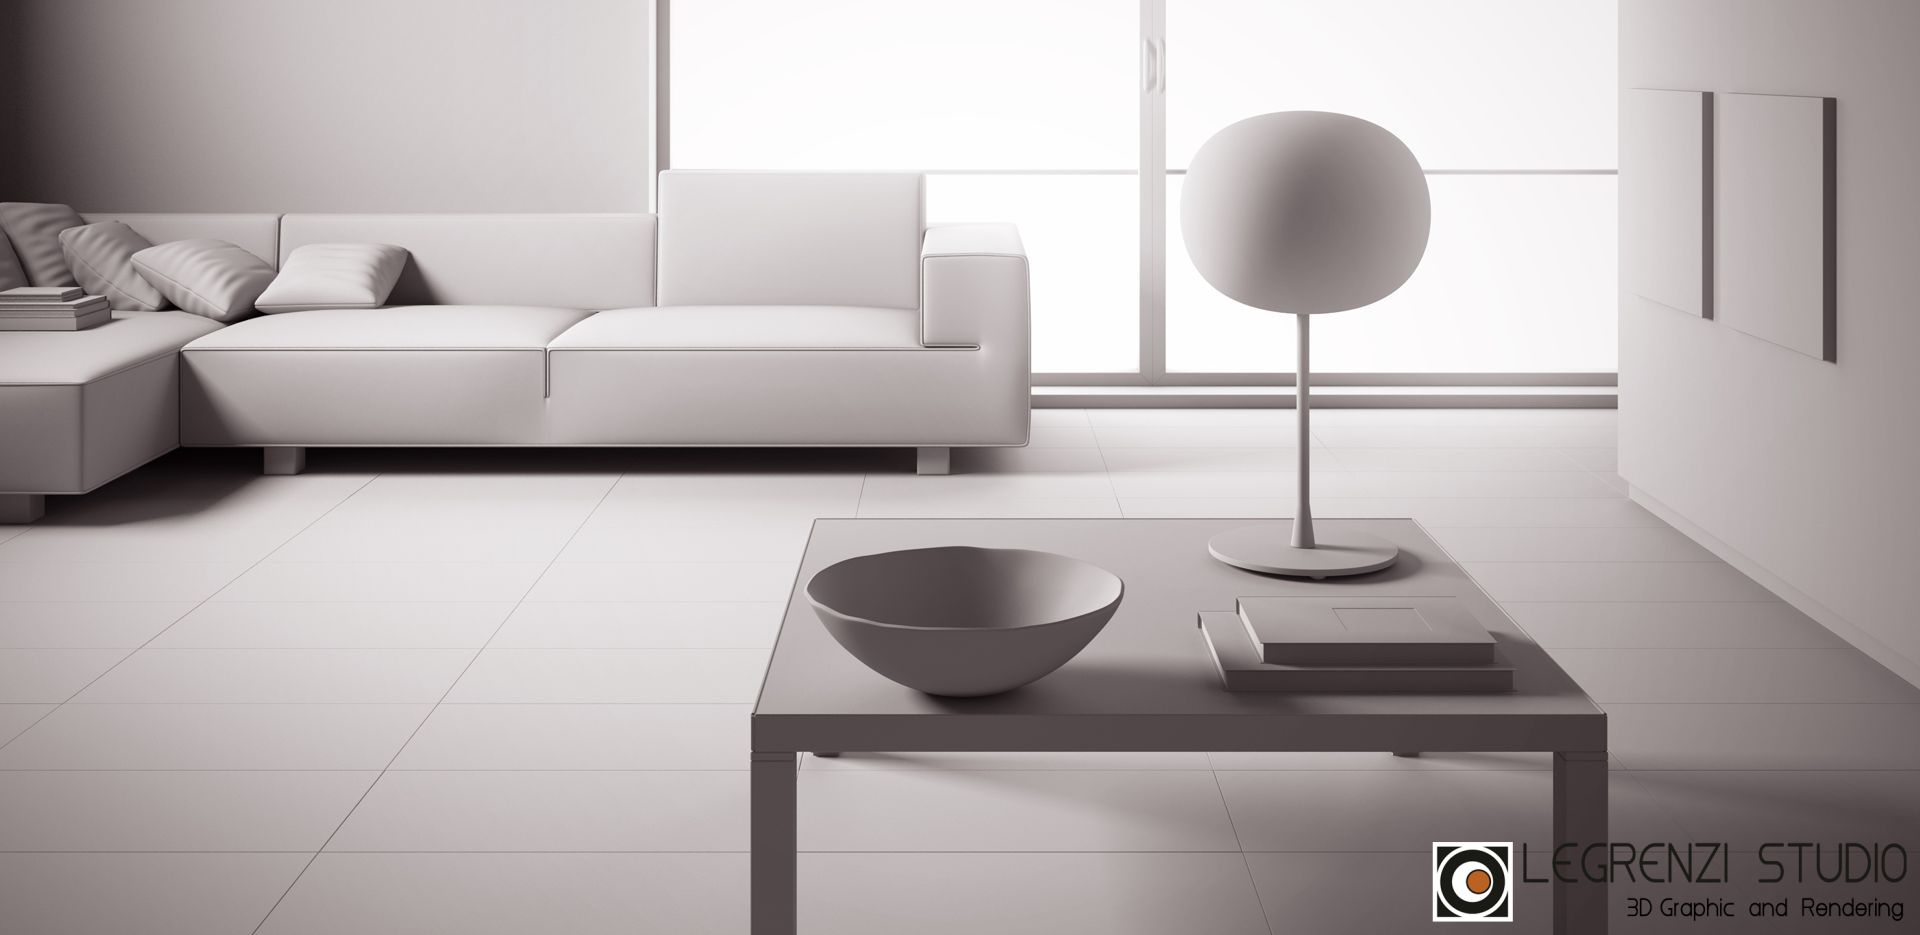 Living_Room_Clay_01